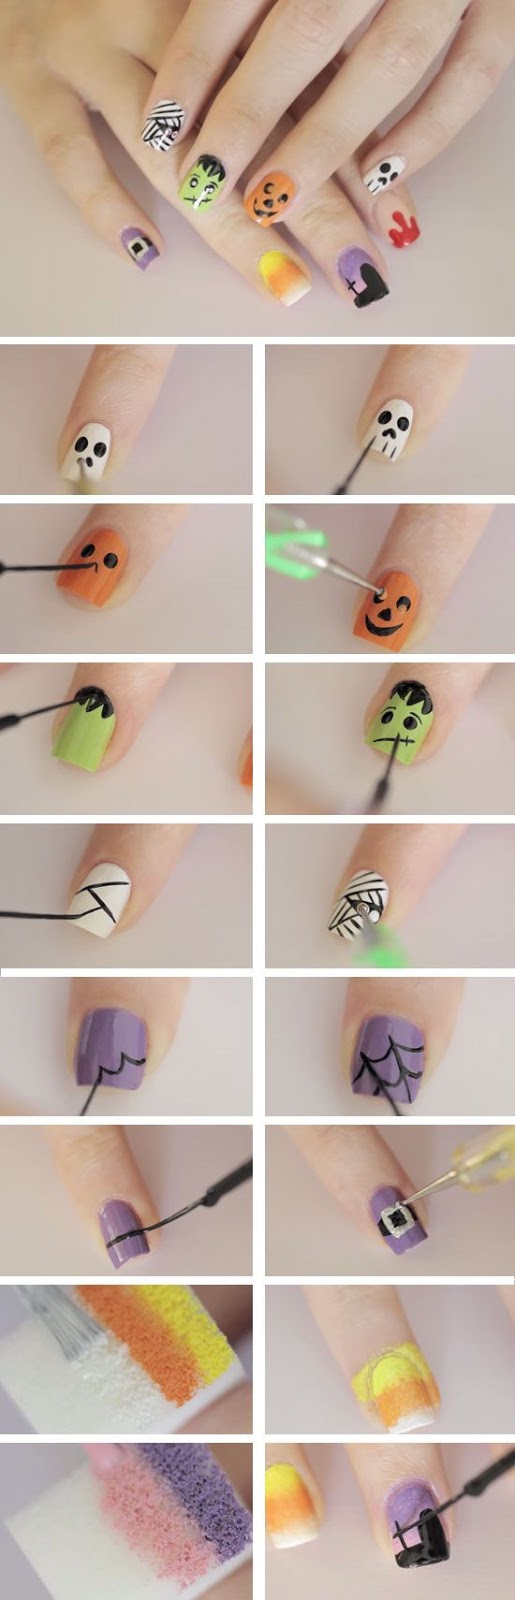 Nails ArtsTutorials...